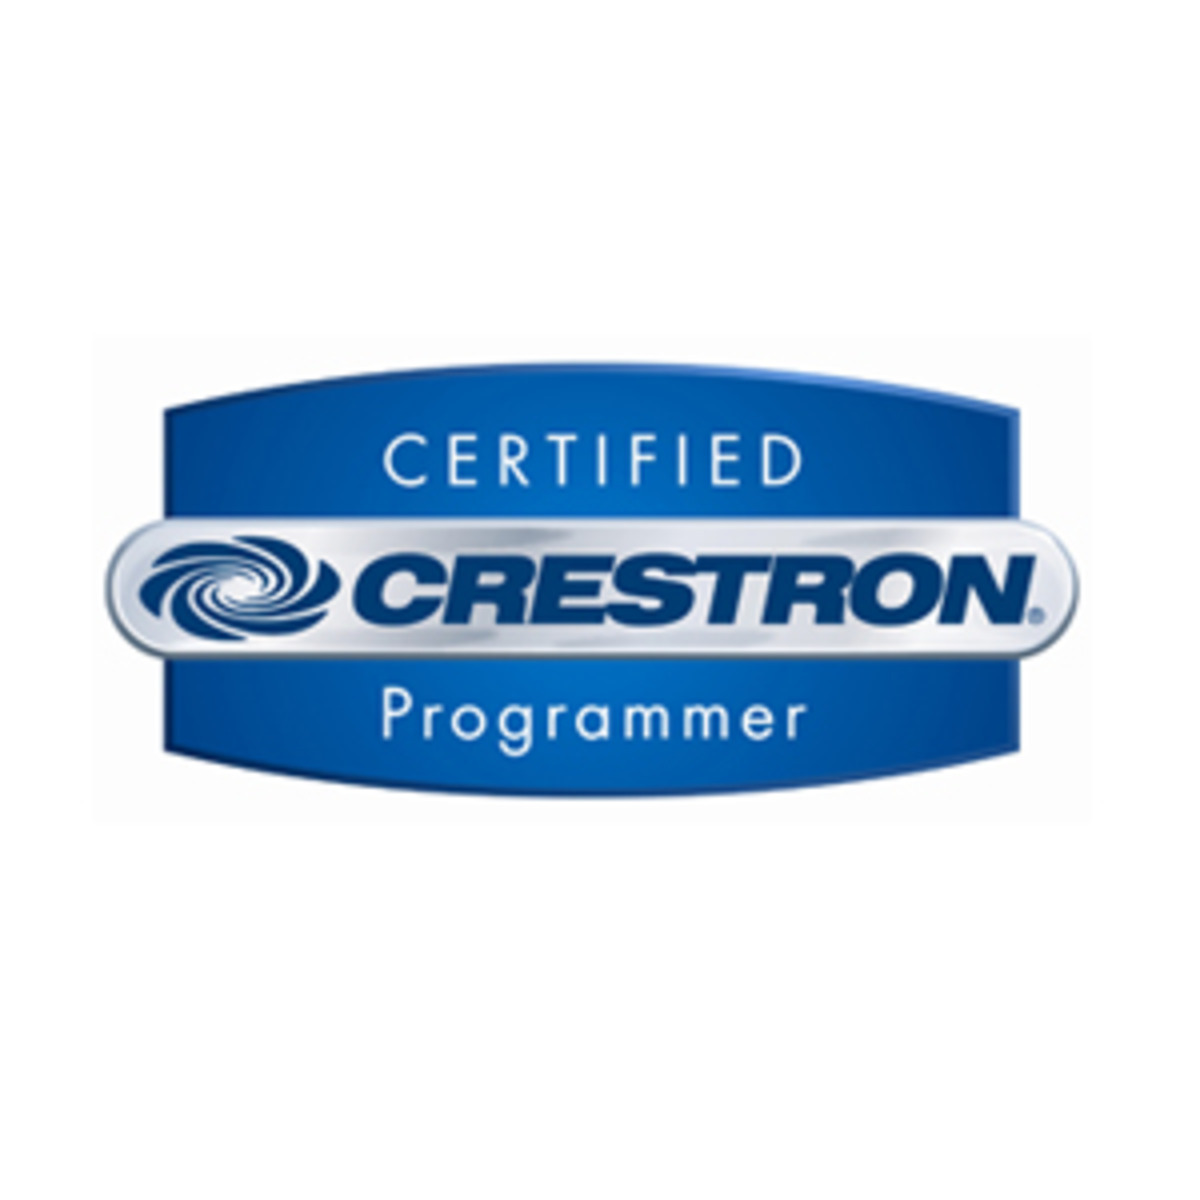 Crestron Authorised Service Partner and Certified Programmer